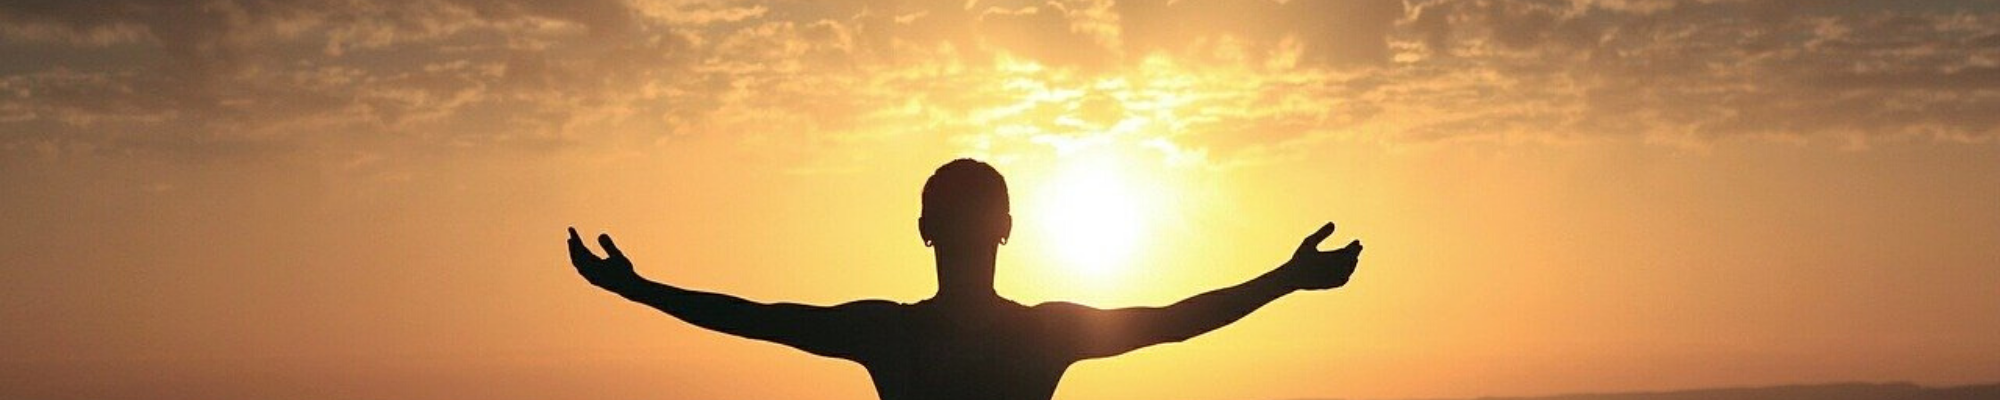 Silhouette of a person, arms open, welcoming the sunrise